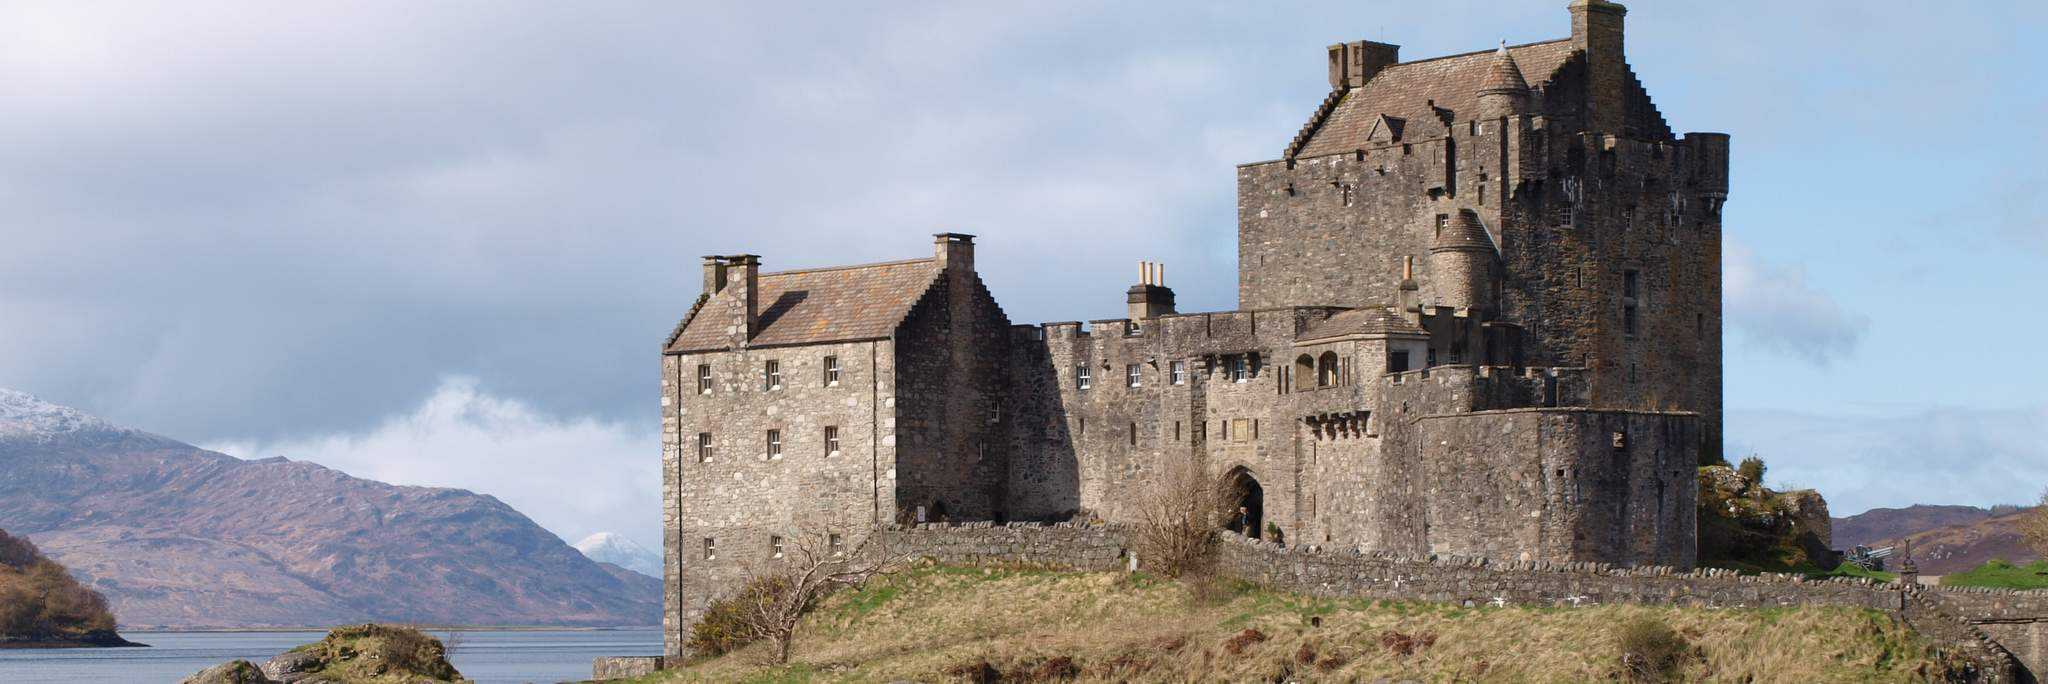 Castles in The Highlands and the Isle of Skye